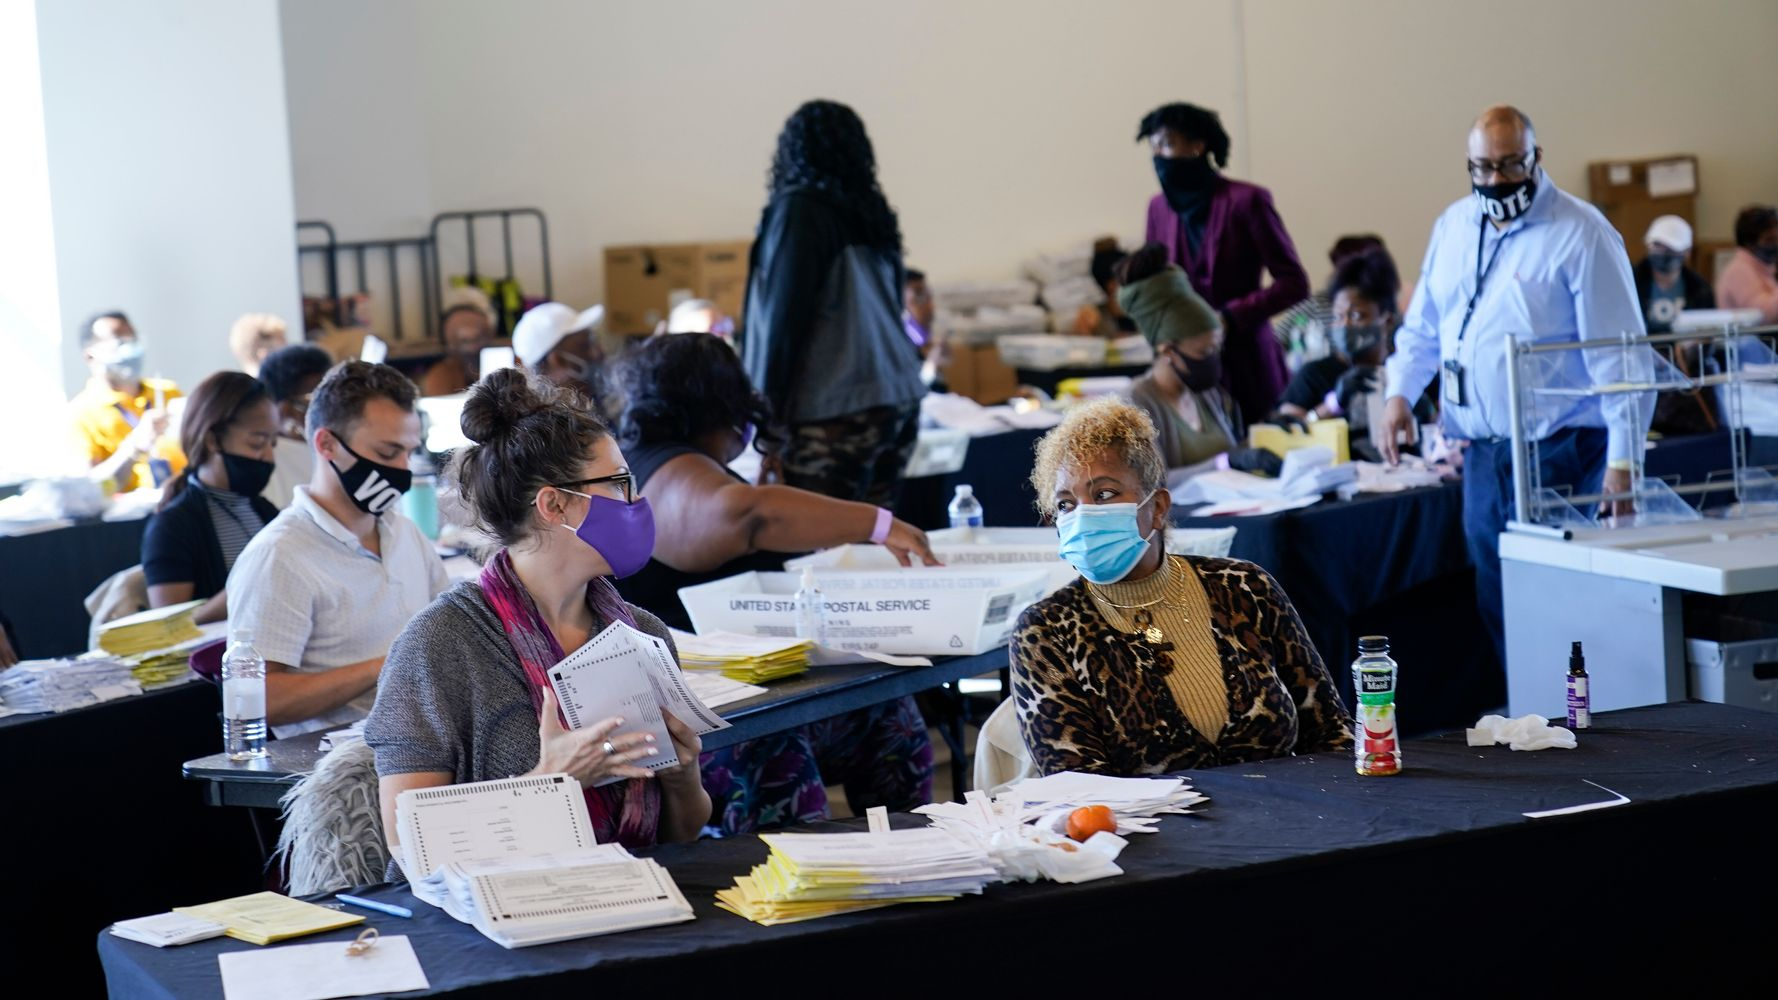 GA Poll Worker In Hiding After False Fraud Claims Surface Online